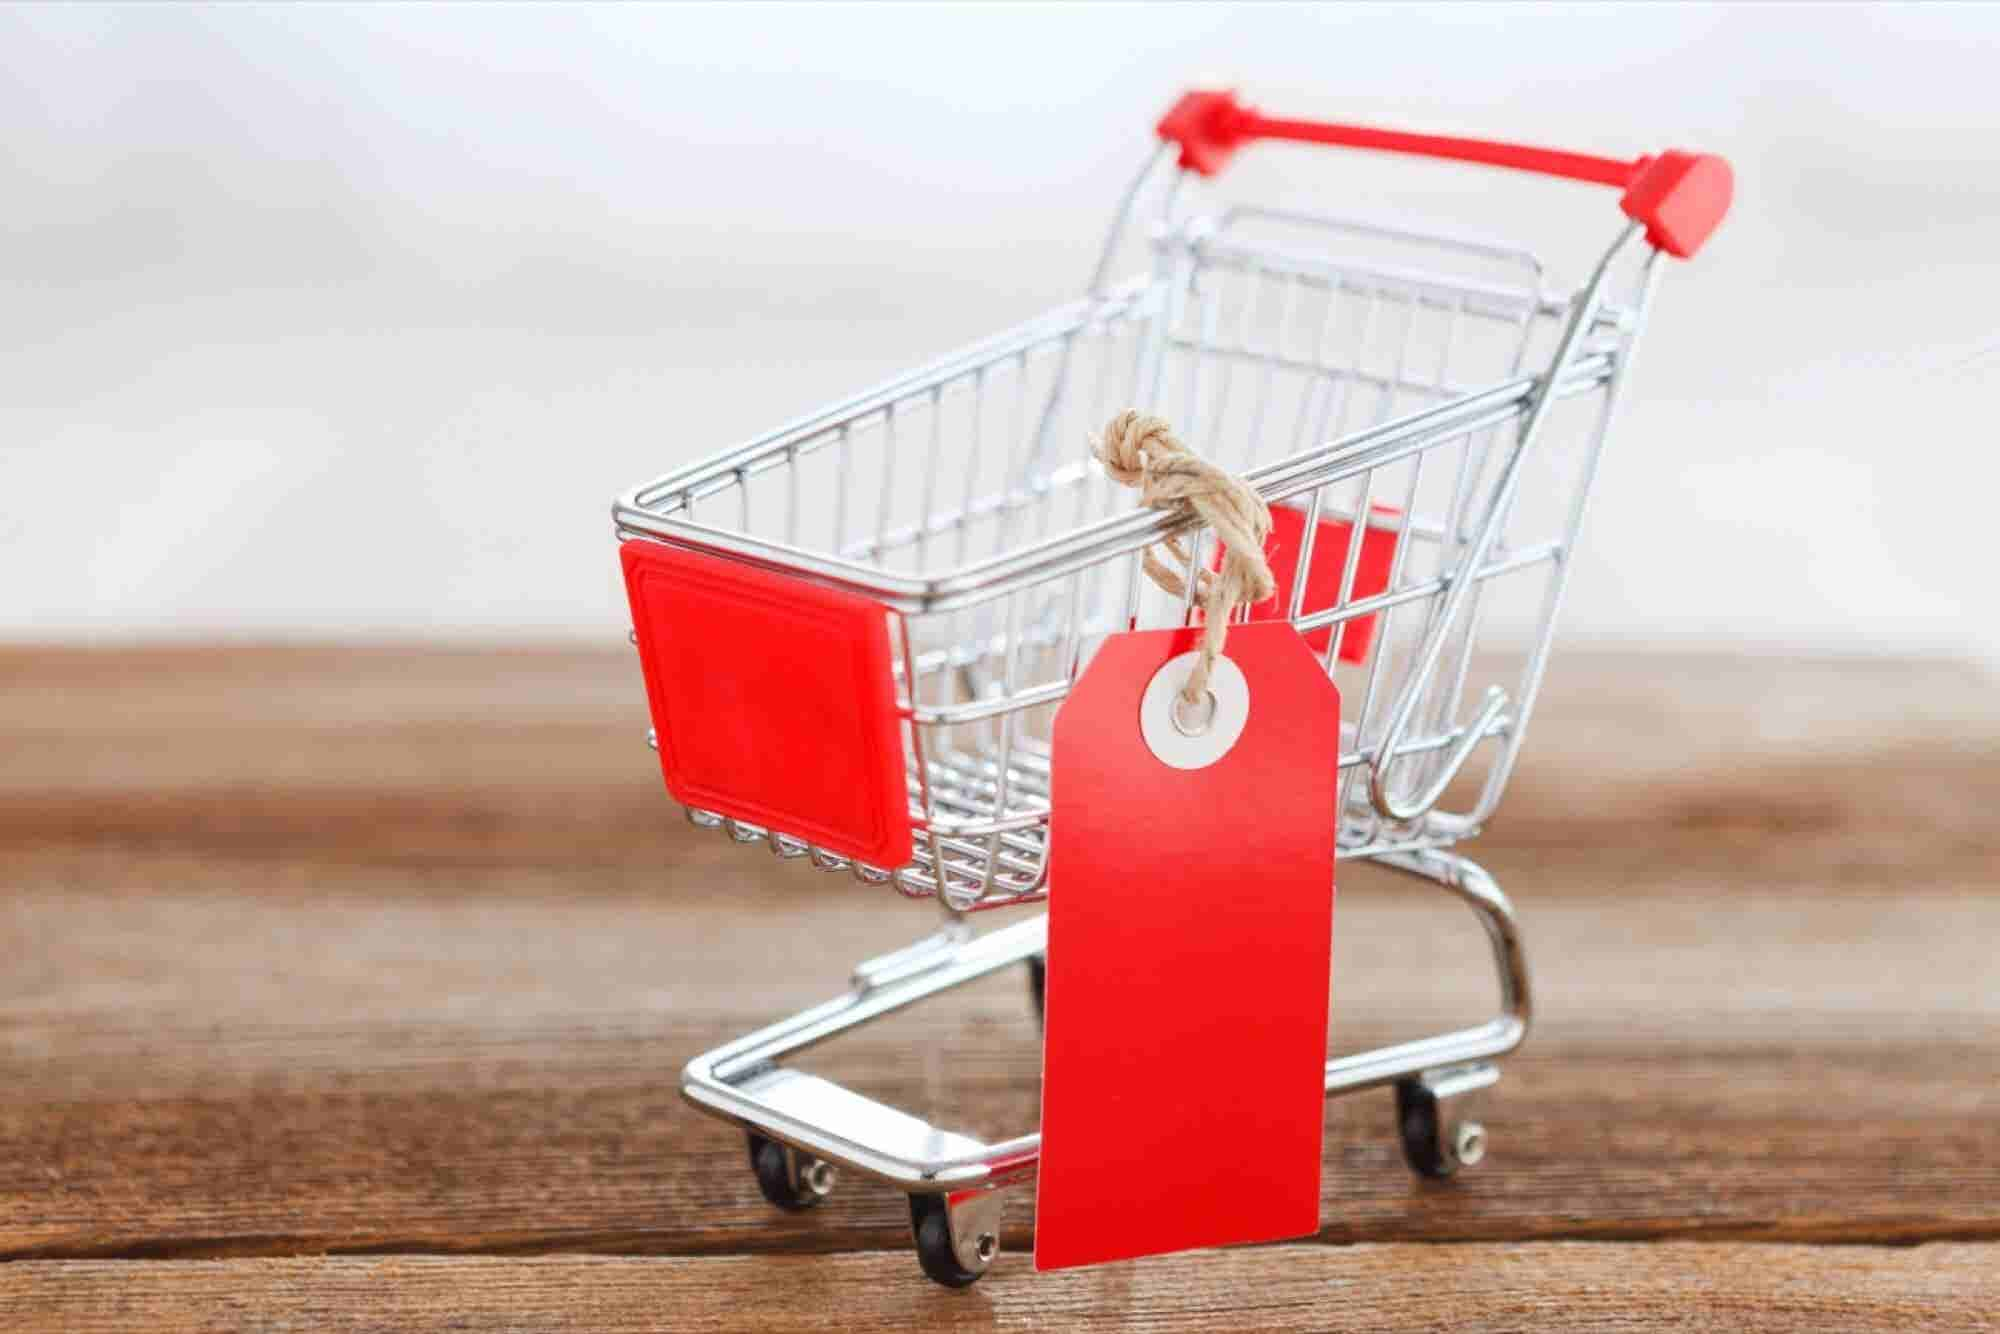 #7 Reasons to Invest in Indian B2B E-commerce Marketplace